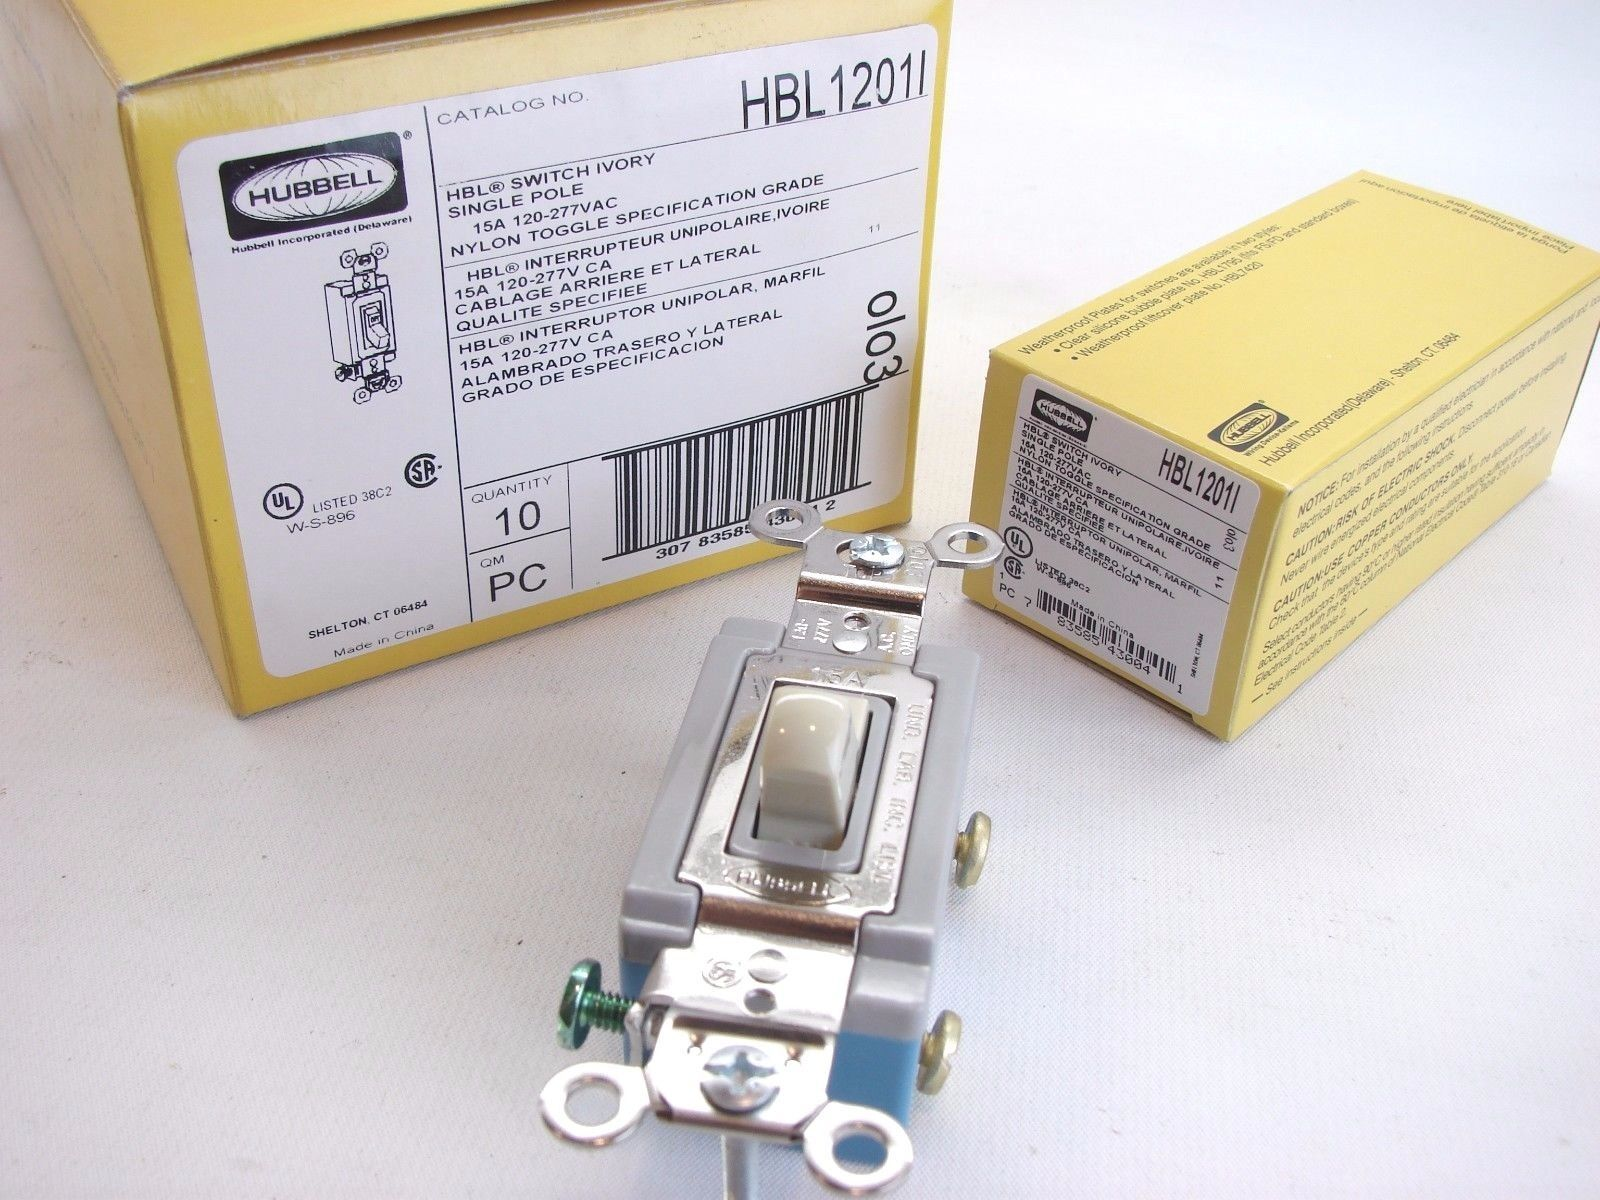 Hubbell Hbl1201i Ivory Single Pole Spec And 48 Similar Items Toggle Switch Grade 120 277 15a Box Of 10